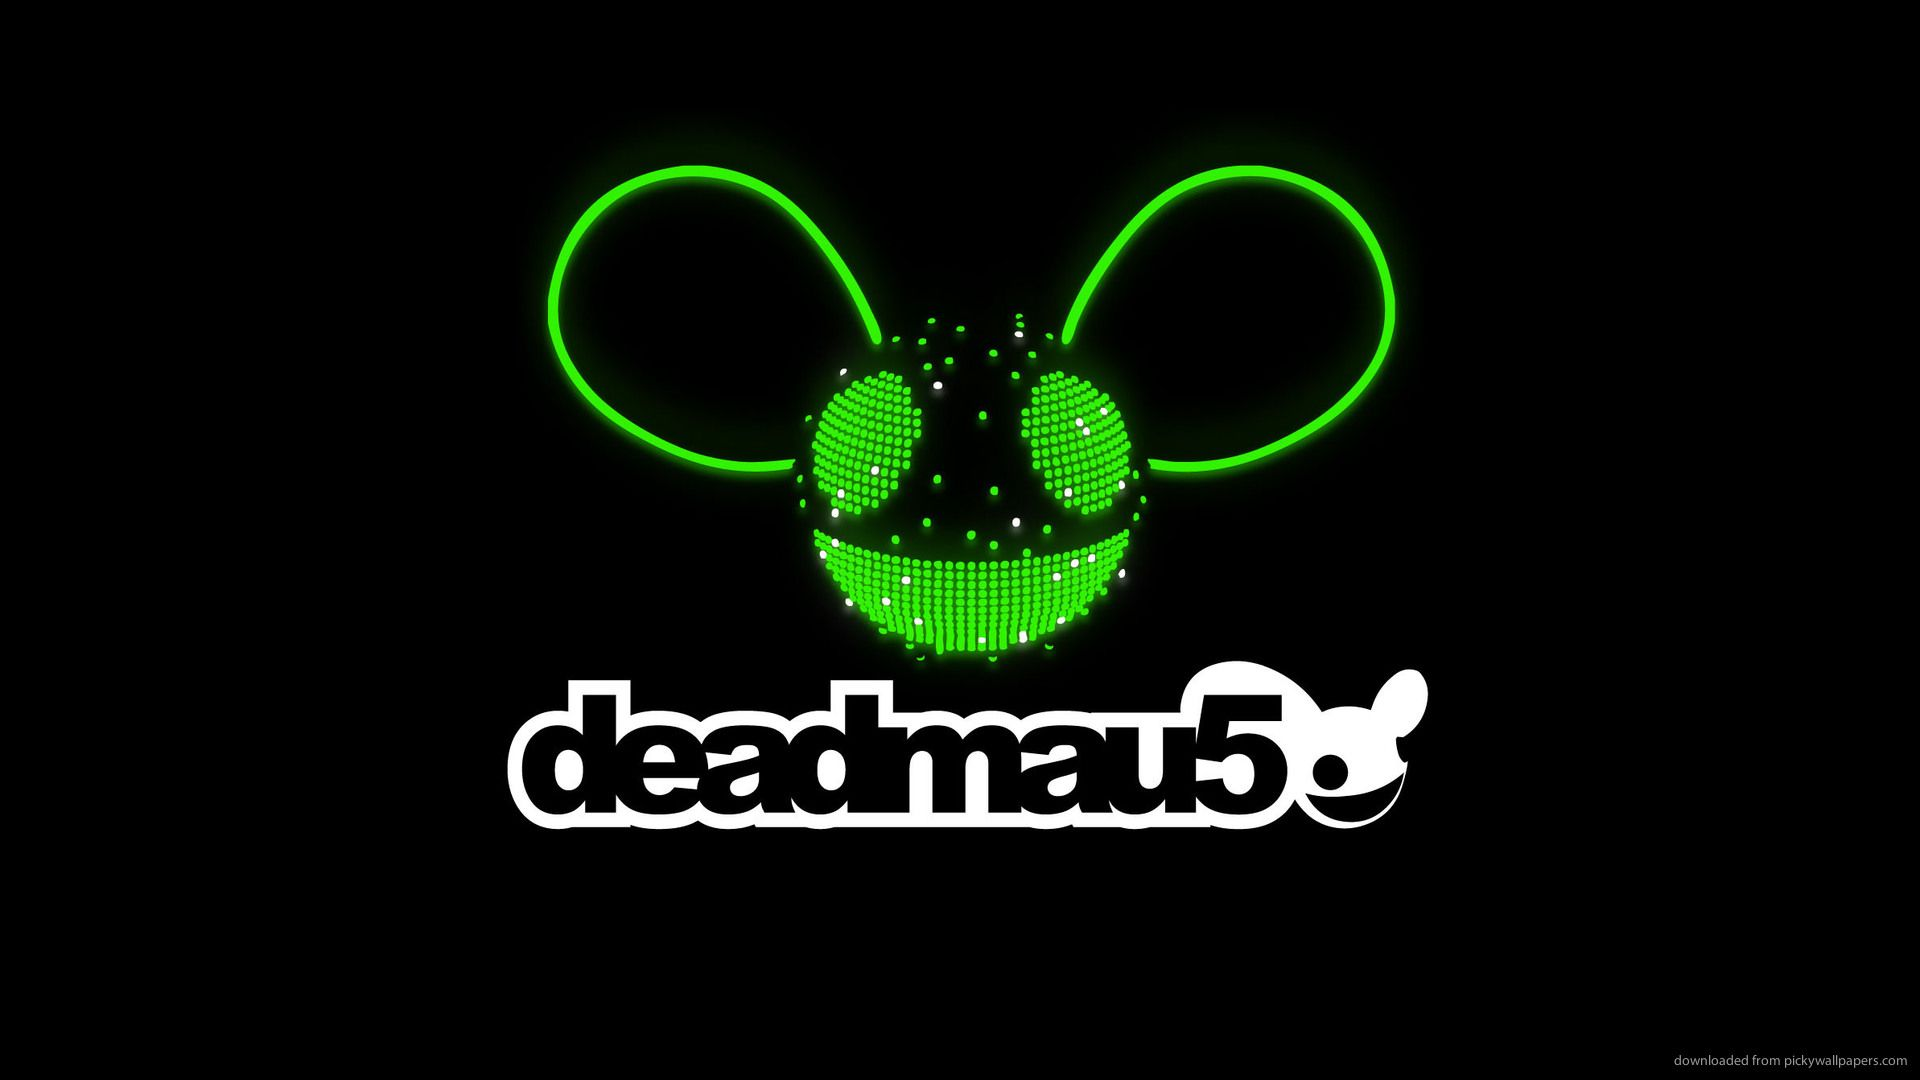 1920x1080 Deadmau5 HD Wallpaper | 1920x1080 | ID:24792 - WallpaperVortex.com